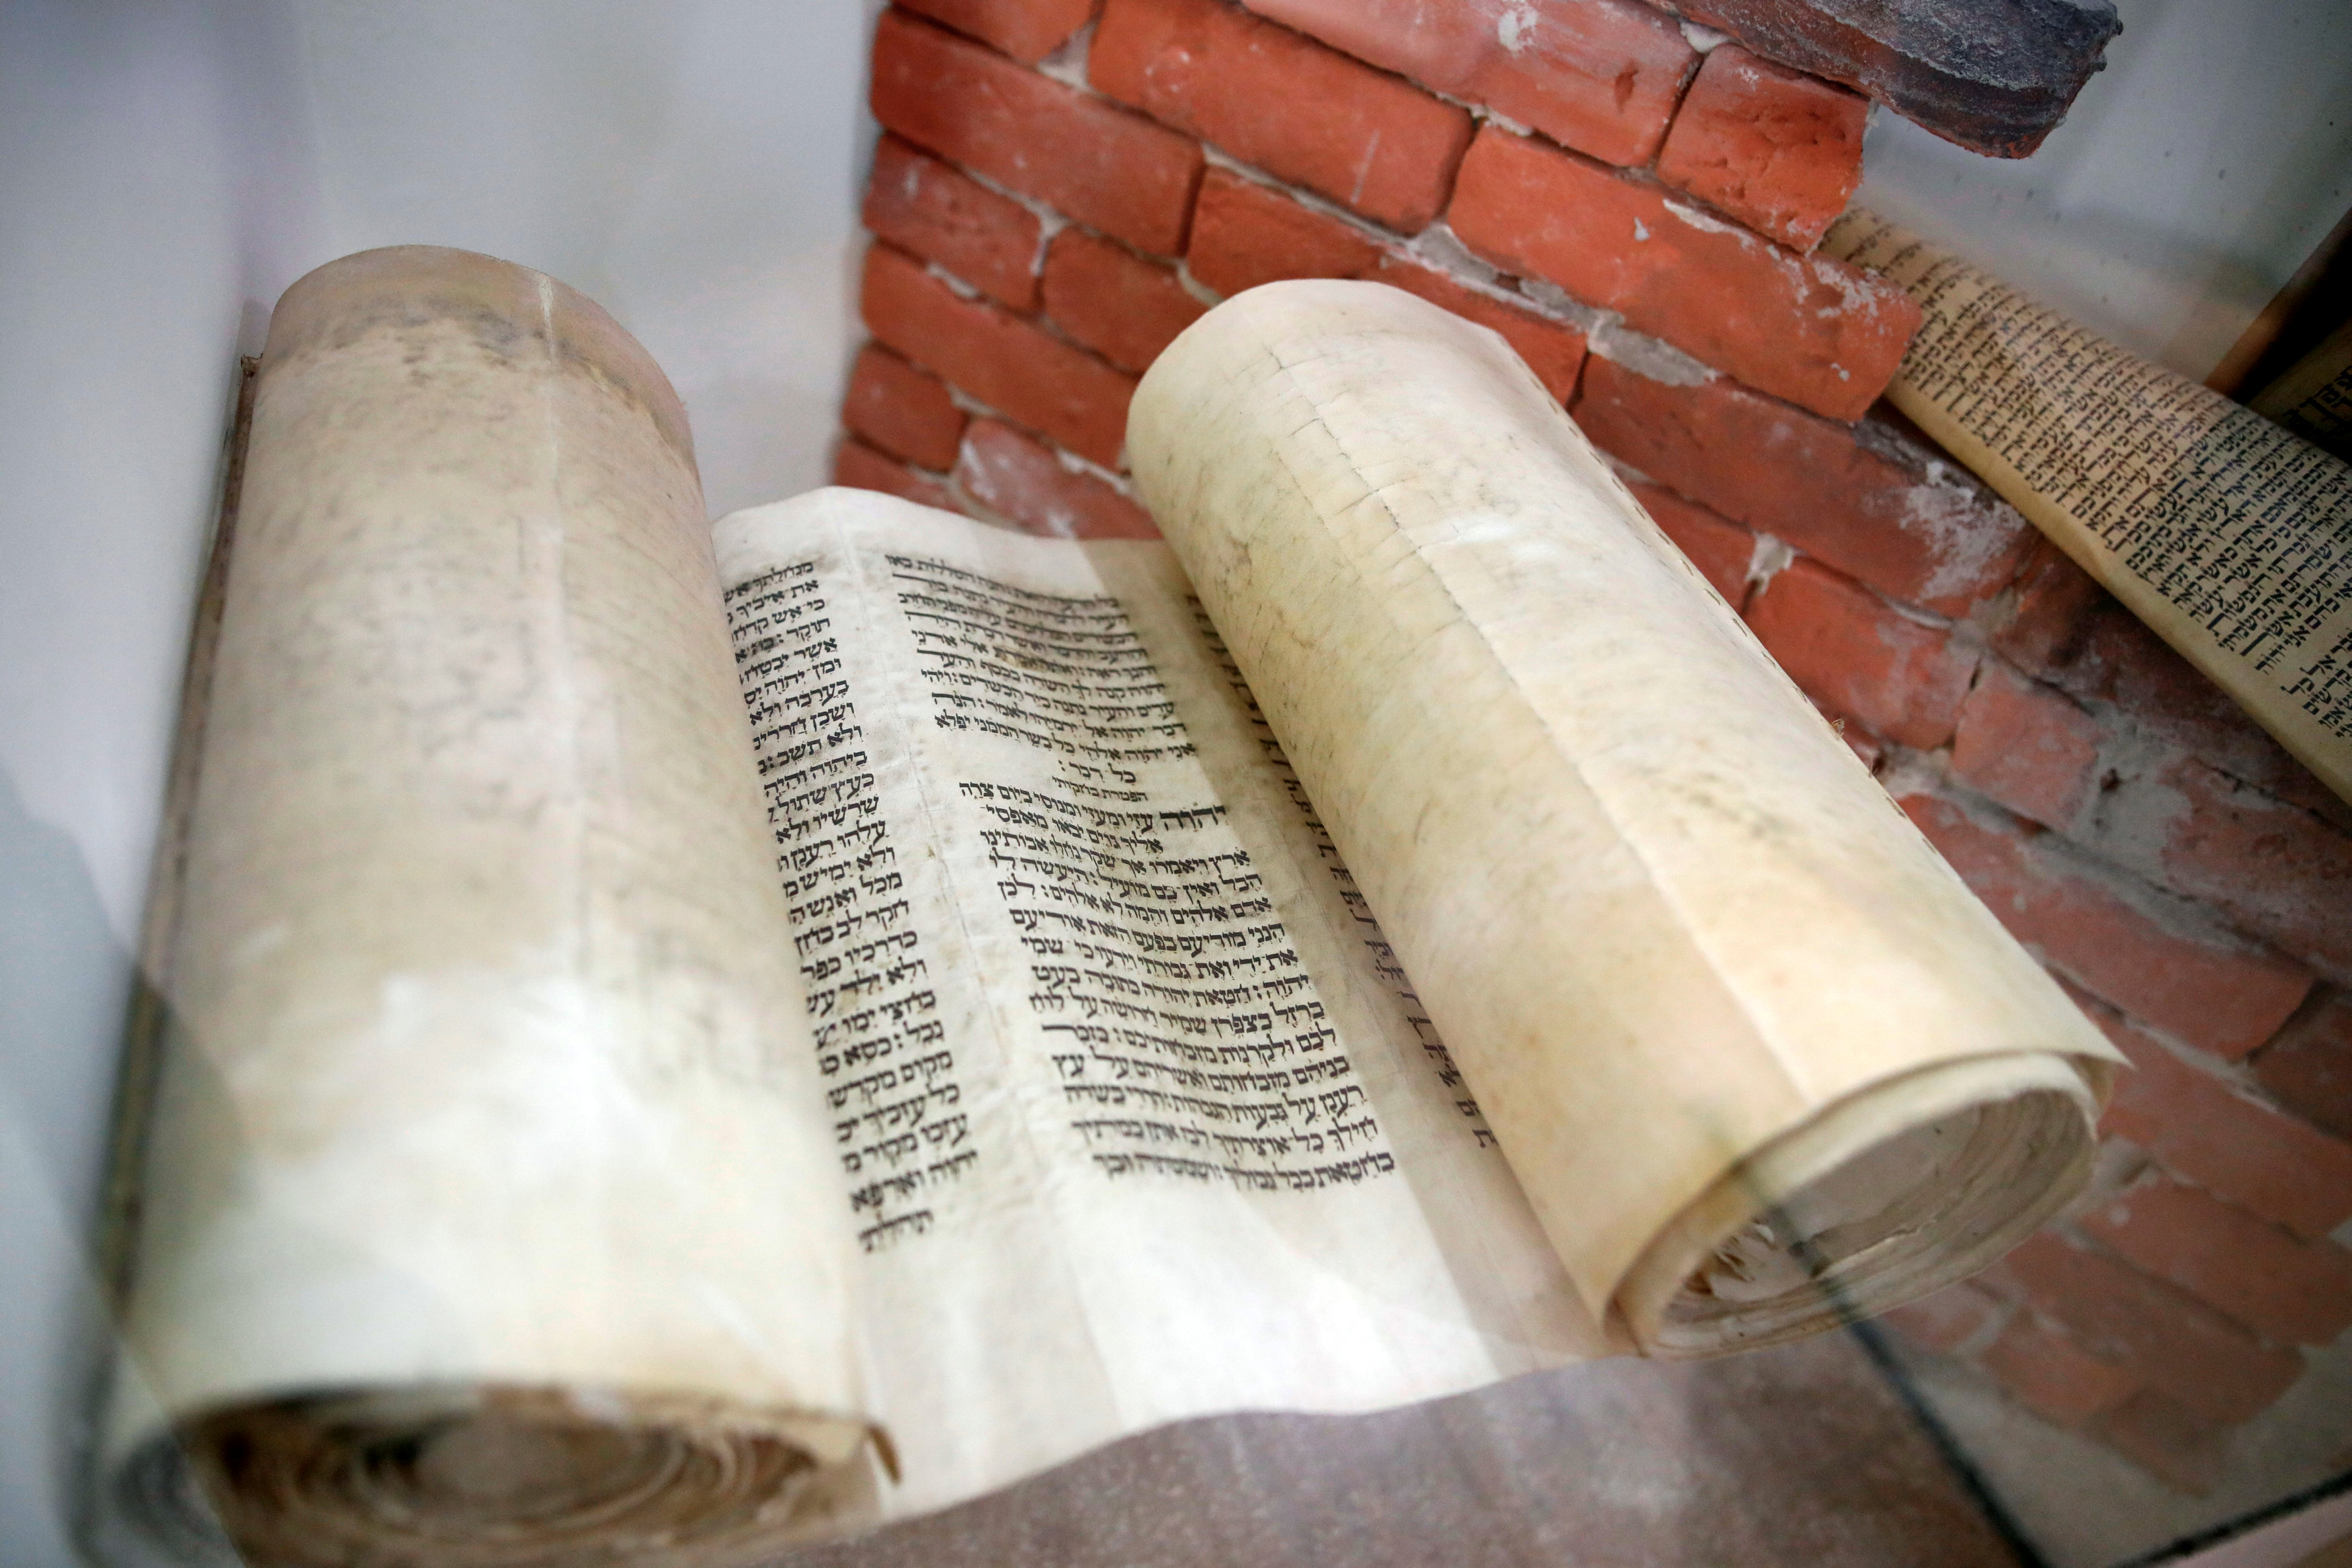 A Jewish holy scroll is seen on display at the Babylonian Jewry Heritage Center in Or Yehuda, Israel, April 16, 2018. REUTERS/Amir Cohen